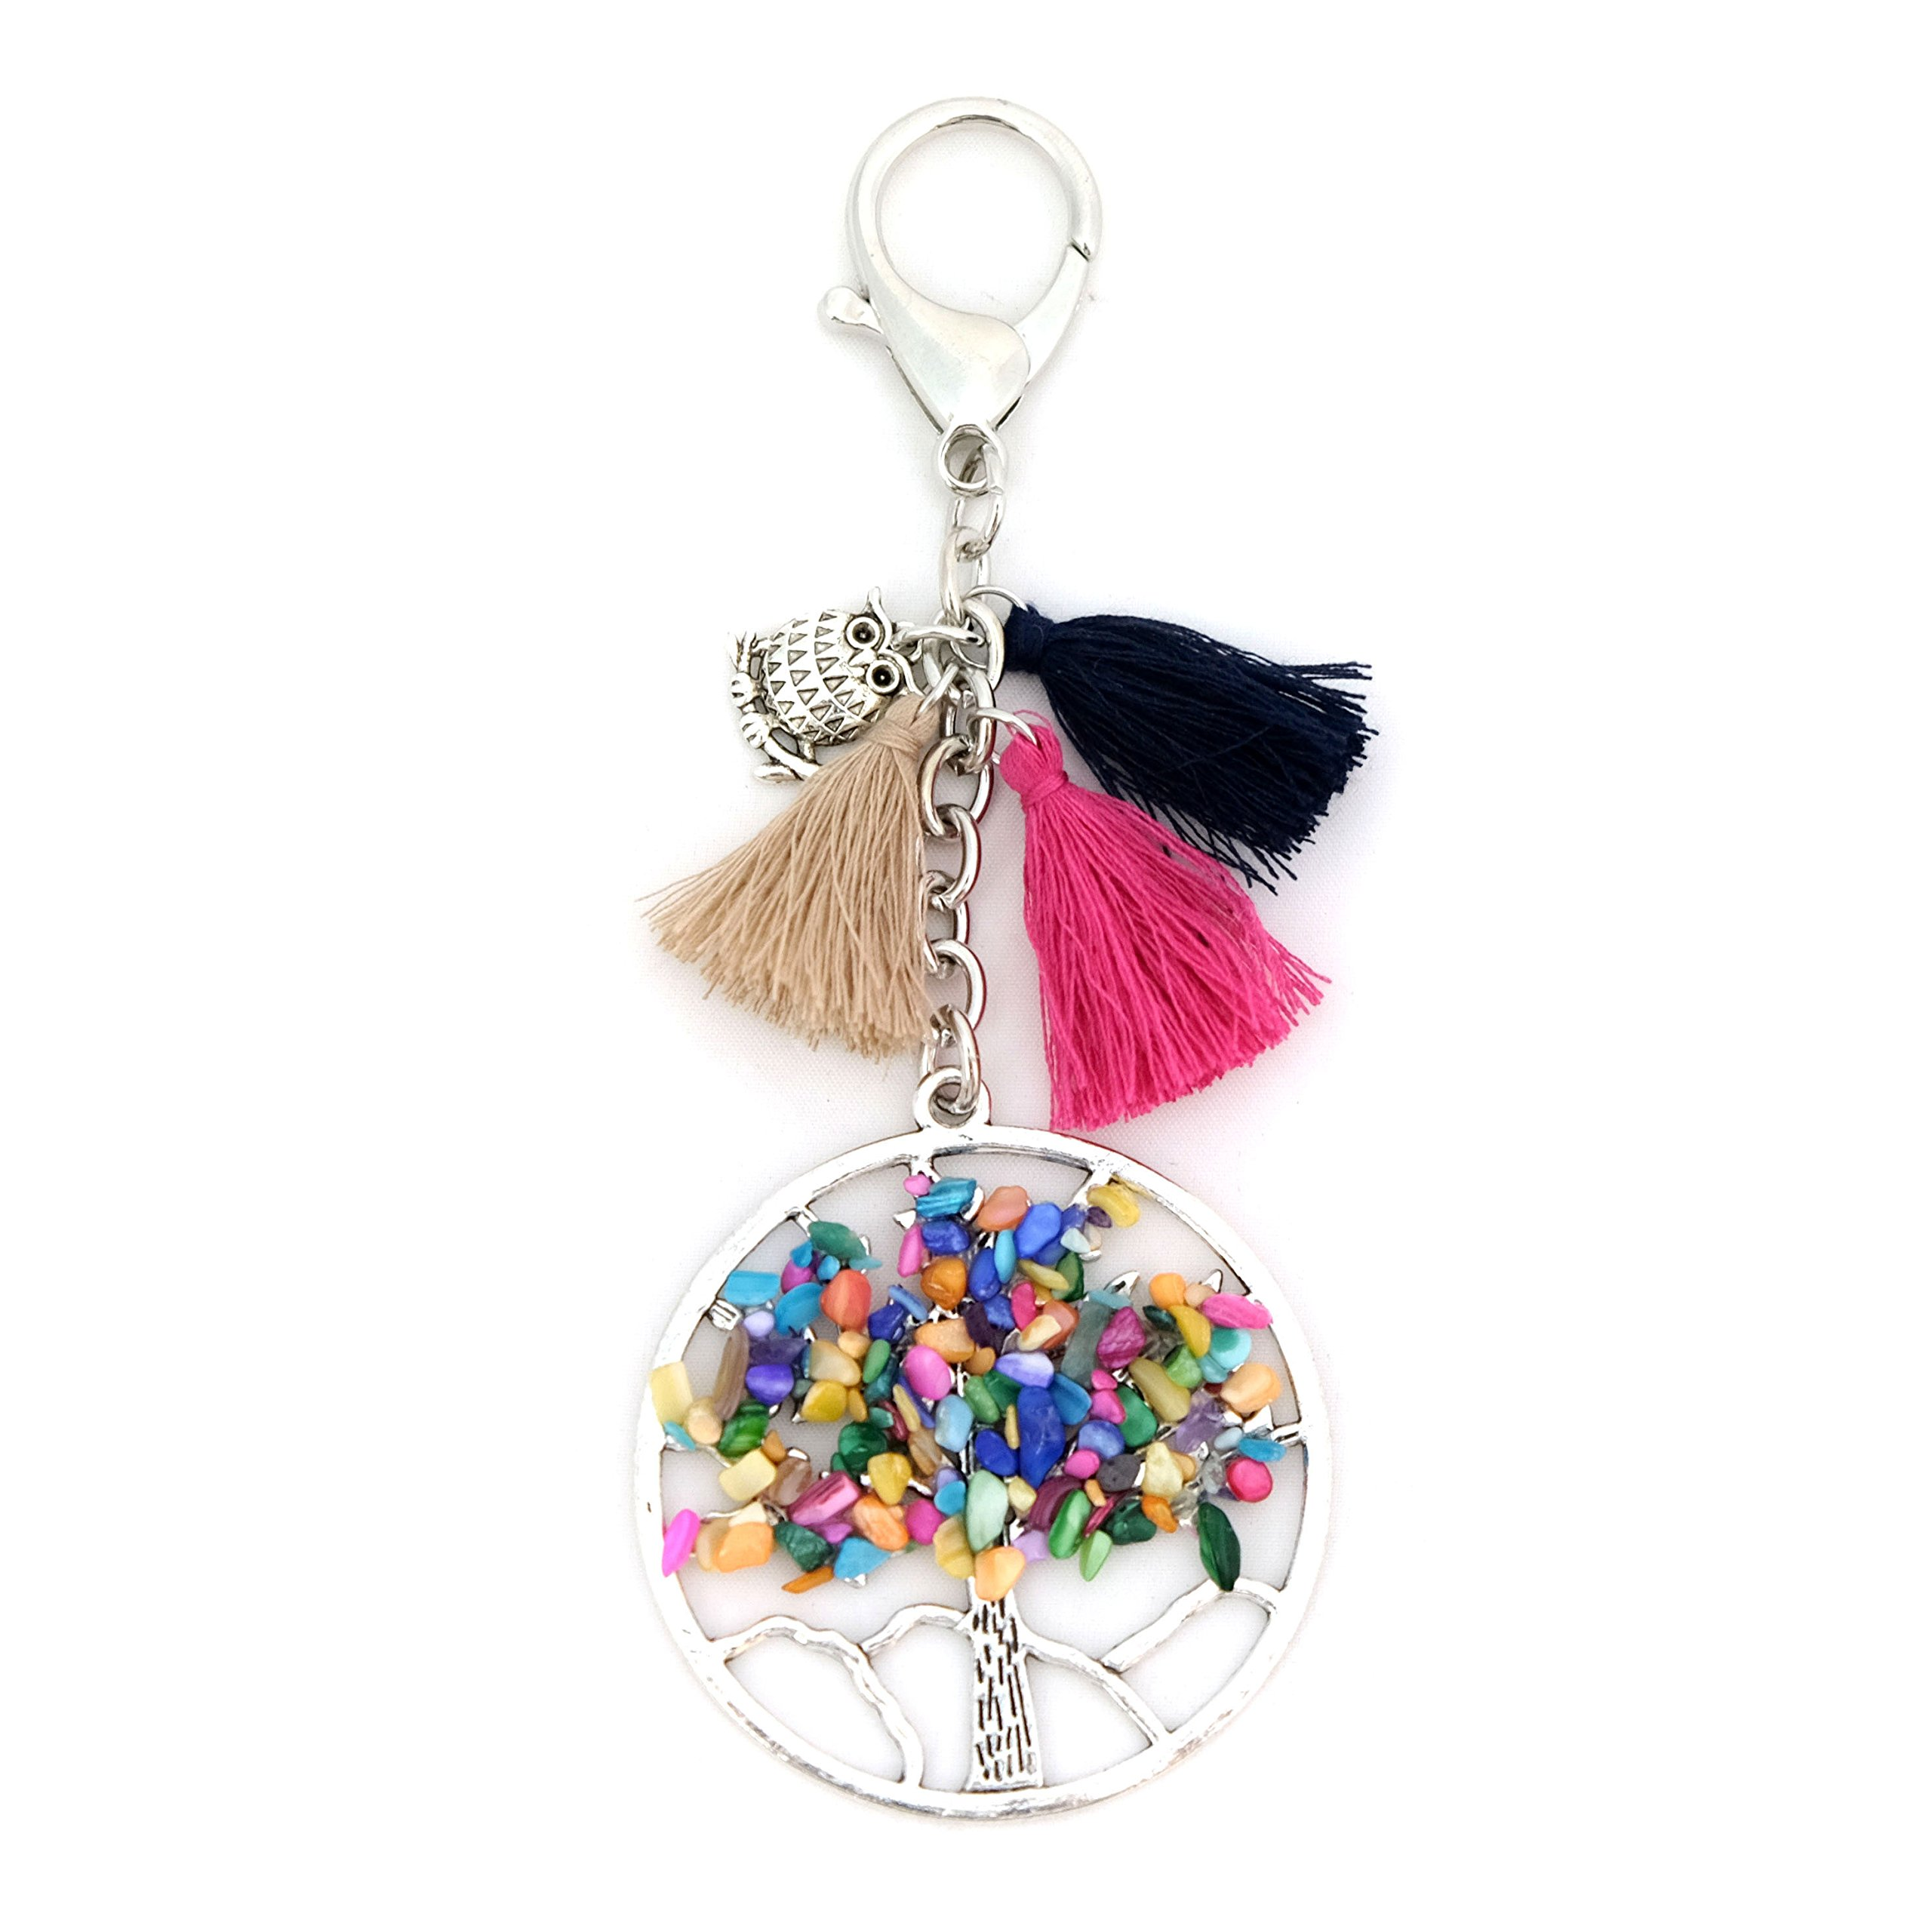 Purse Charm Keychain Tree of Life Owl Tassel Colorful Accessory for Bag Purse Fortune Luck Energy Chakra Healing (Tree of Life)